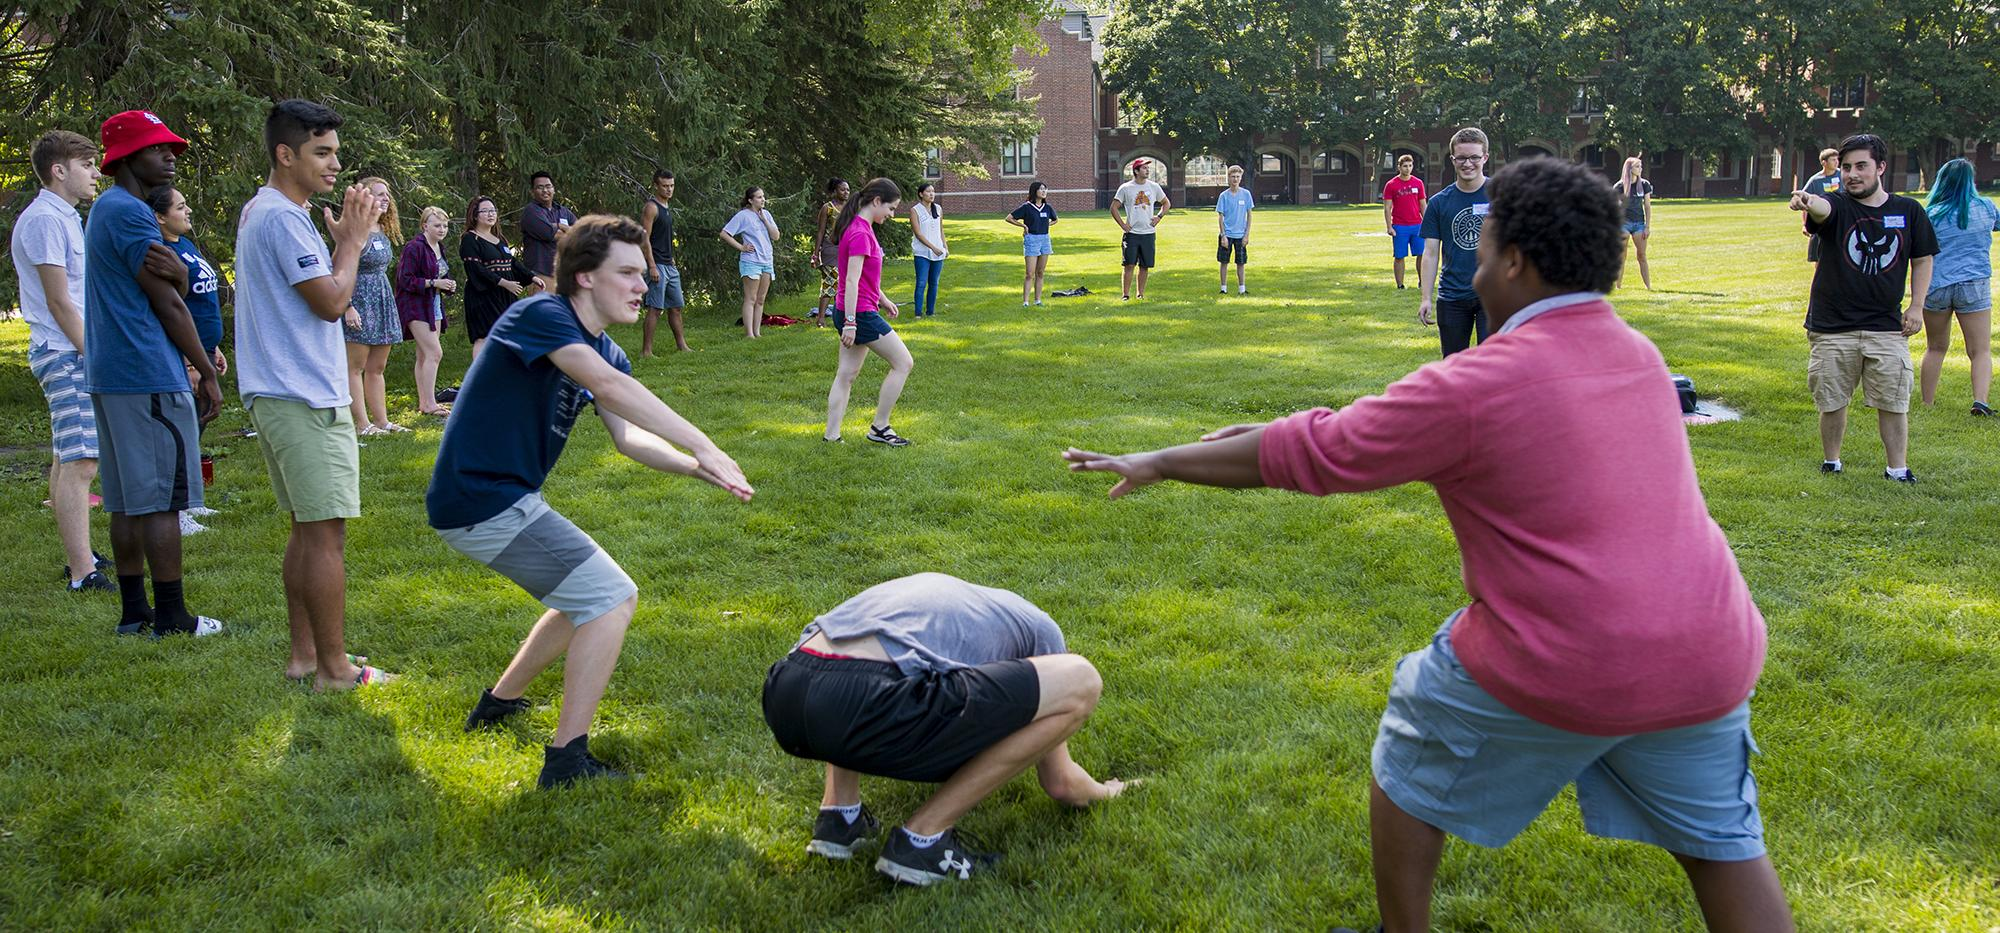 Large circle of students playing an active game on the grass.